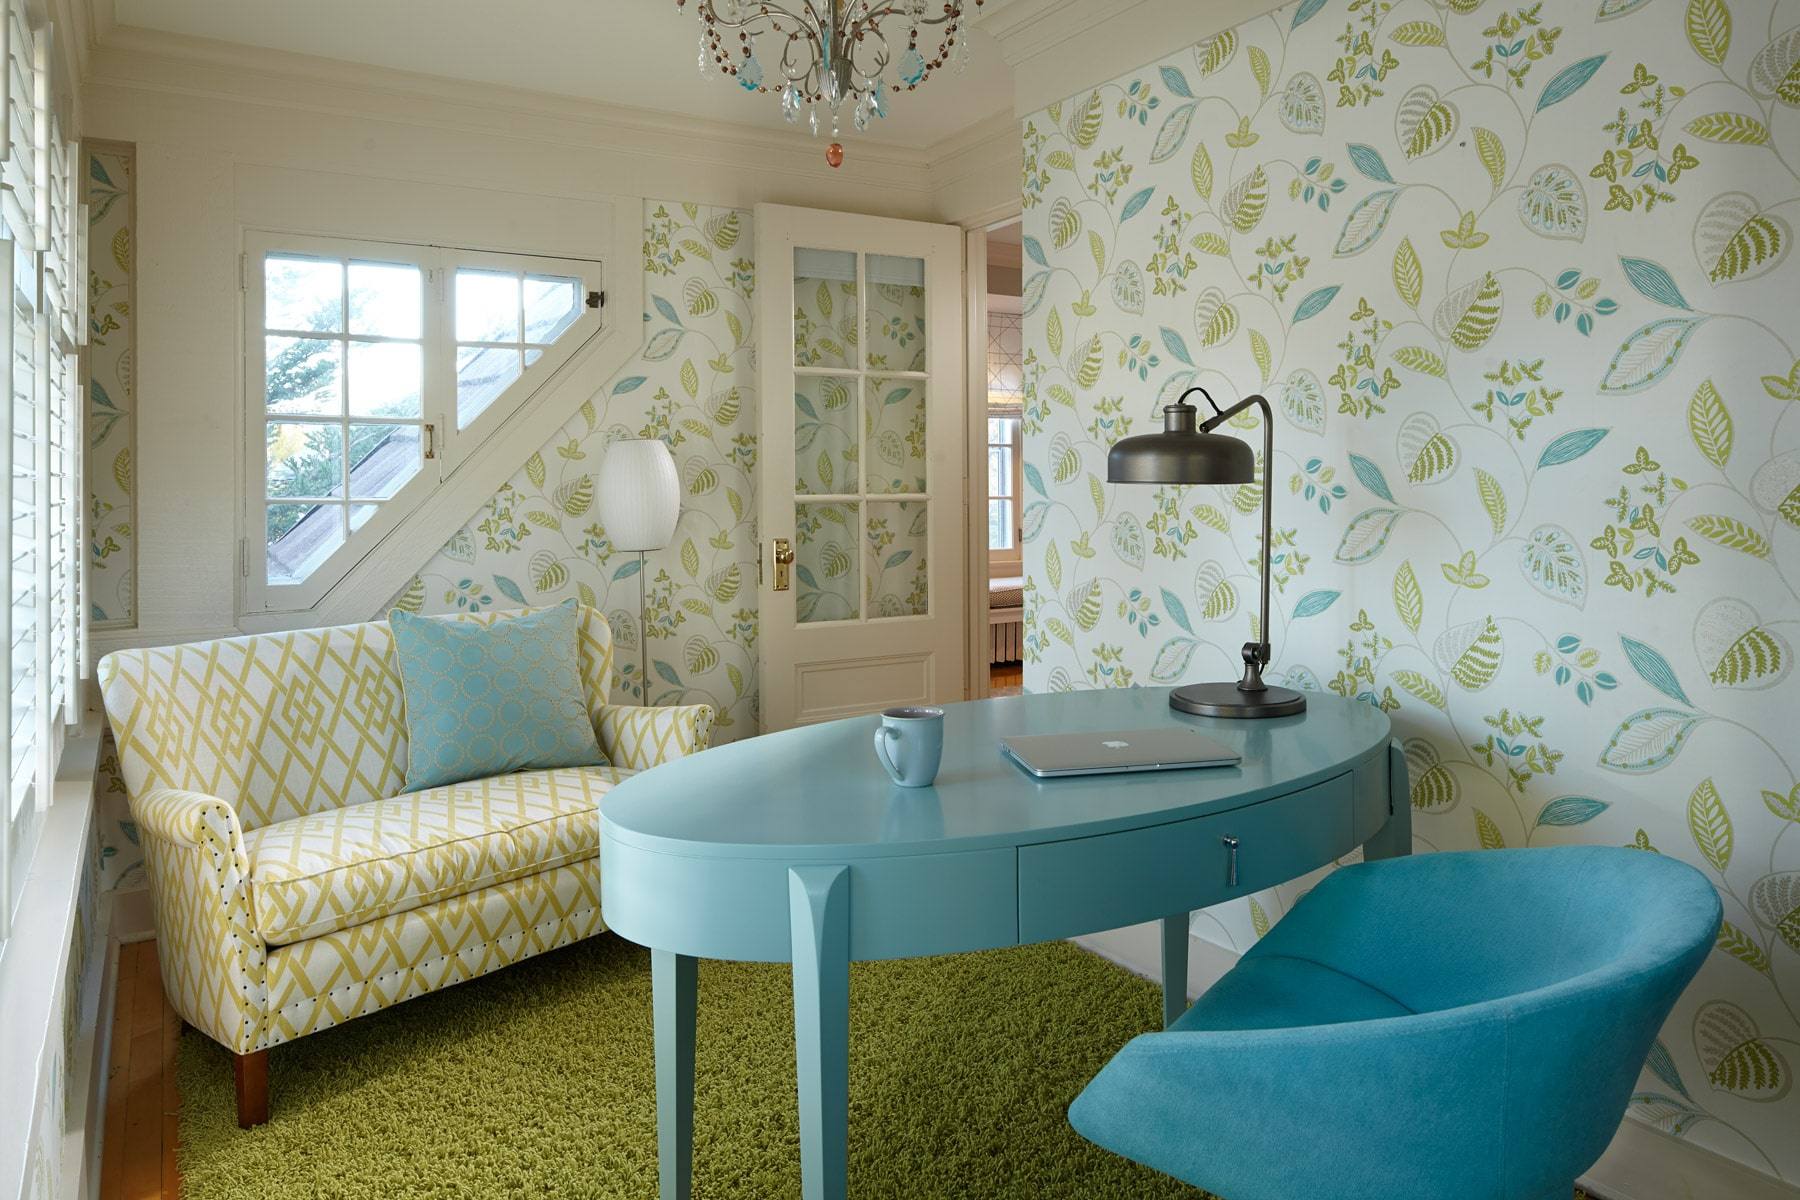 Light blue oval desk and chair in eclectic home office with floral wallpaper